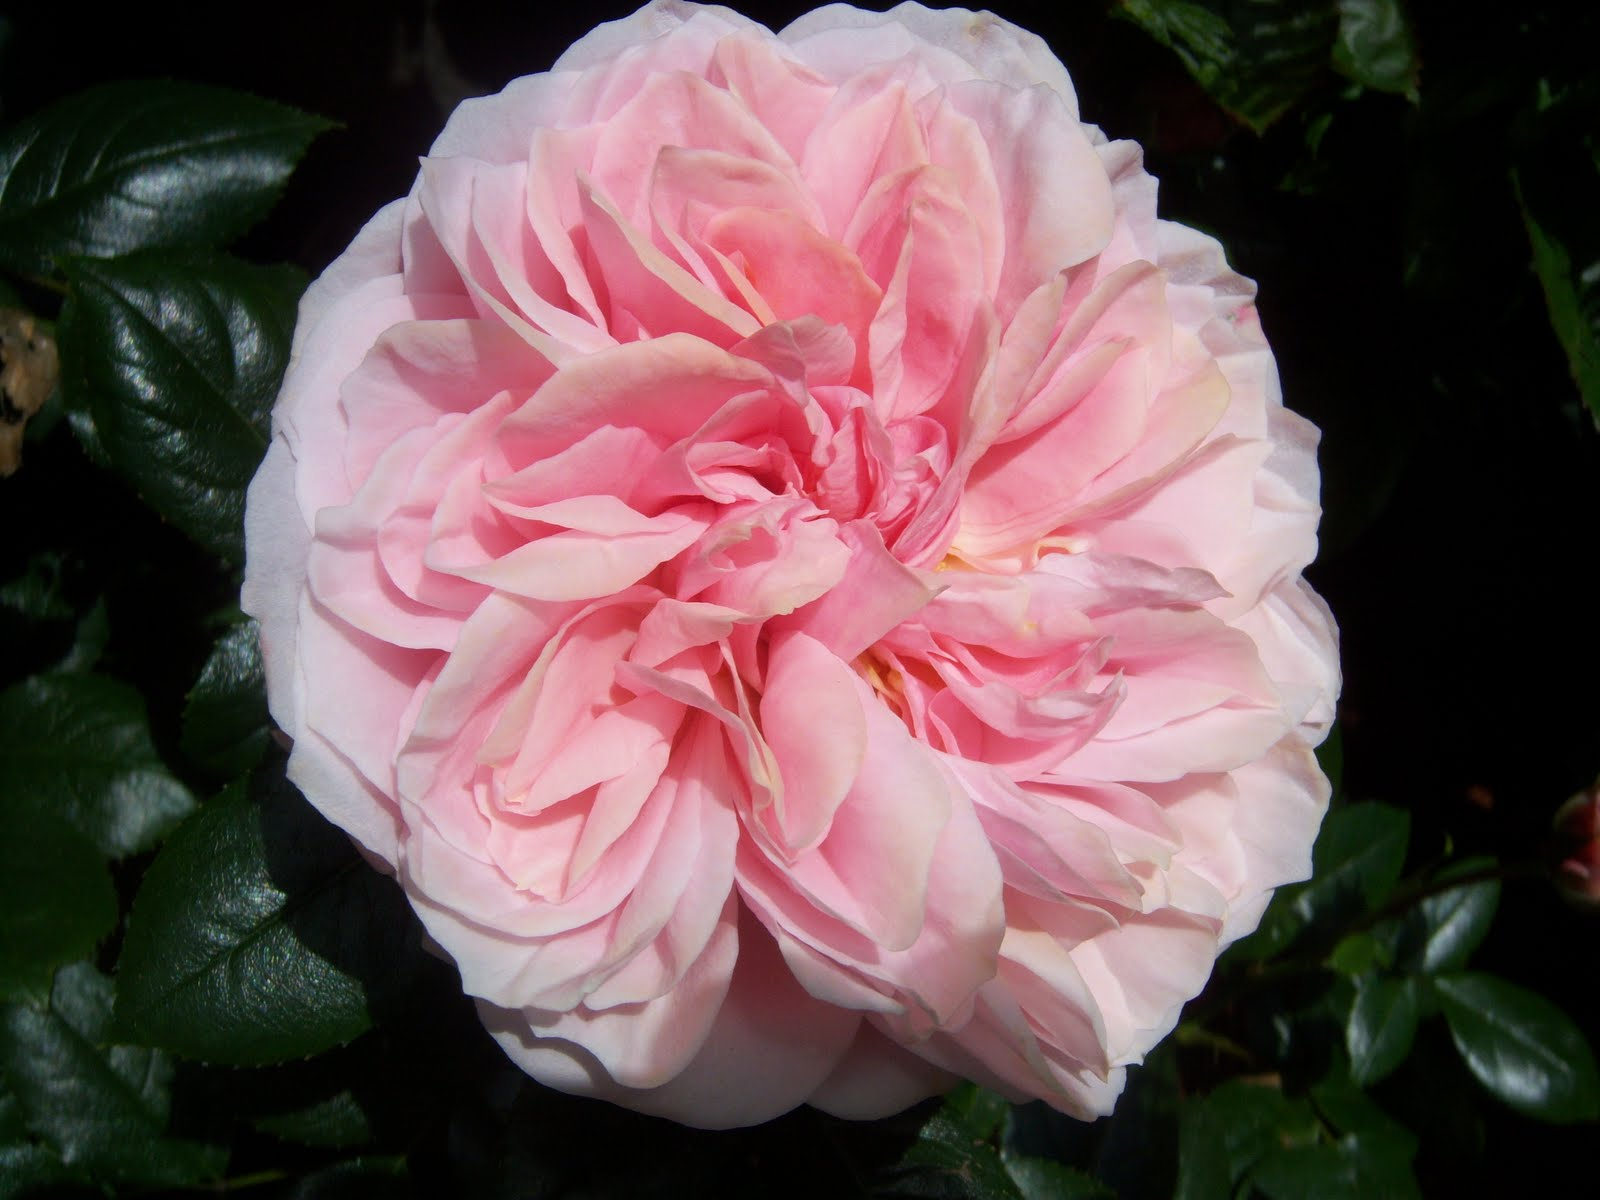 Roses In Garden: Searching For Rosebud: The Most Beautiful Rose Garden In